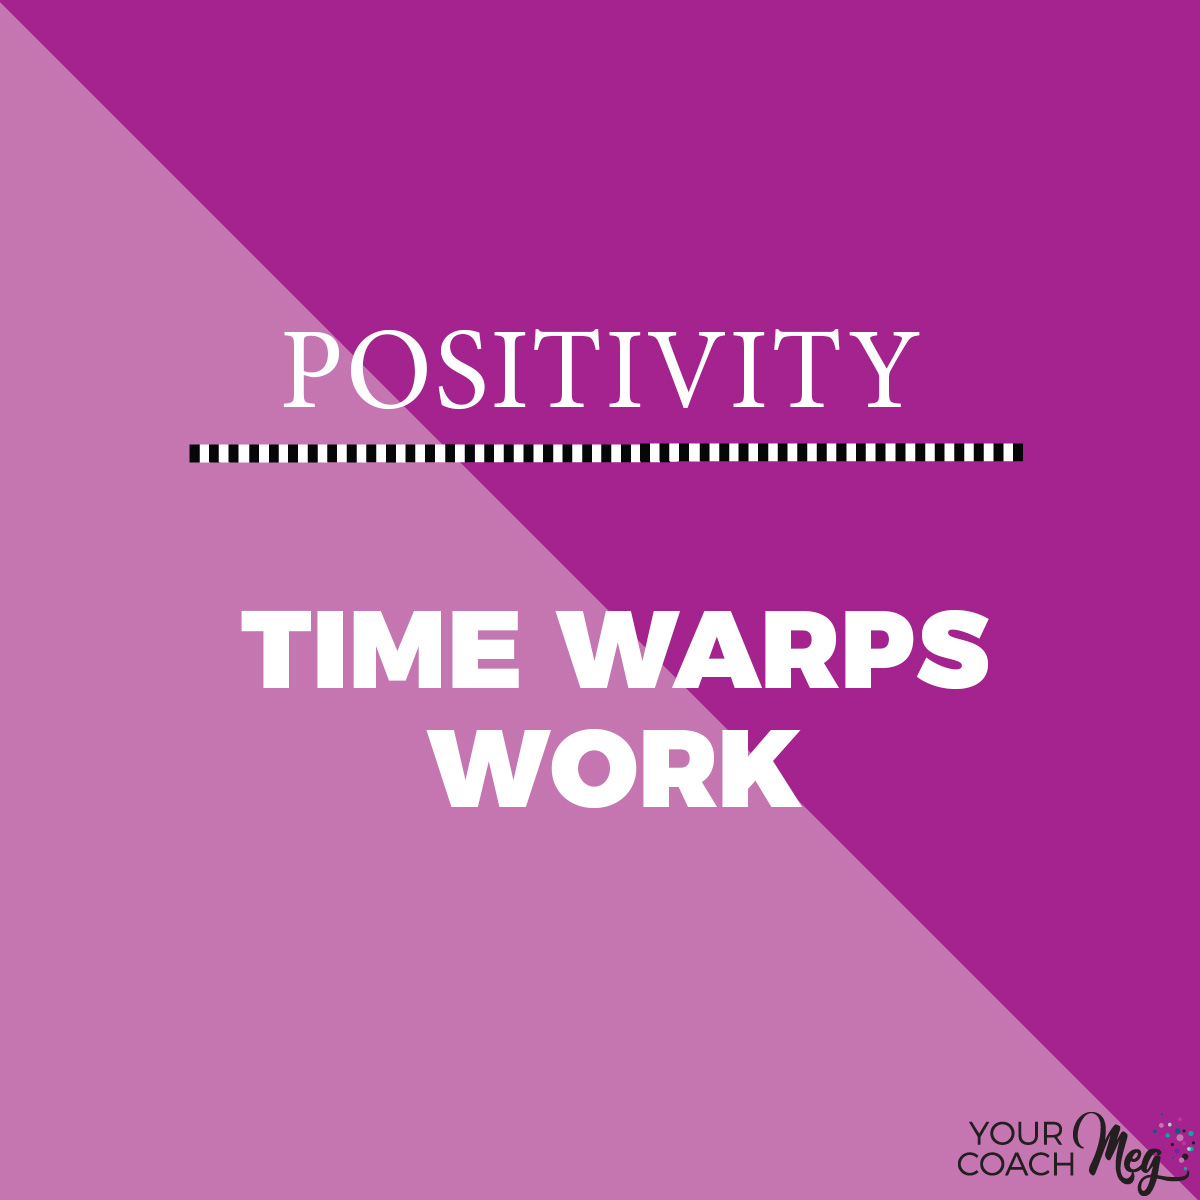 TIME-WARPS-WORK